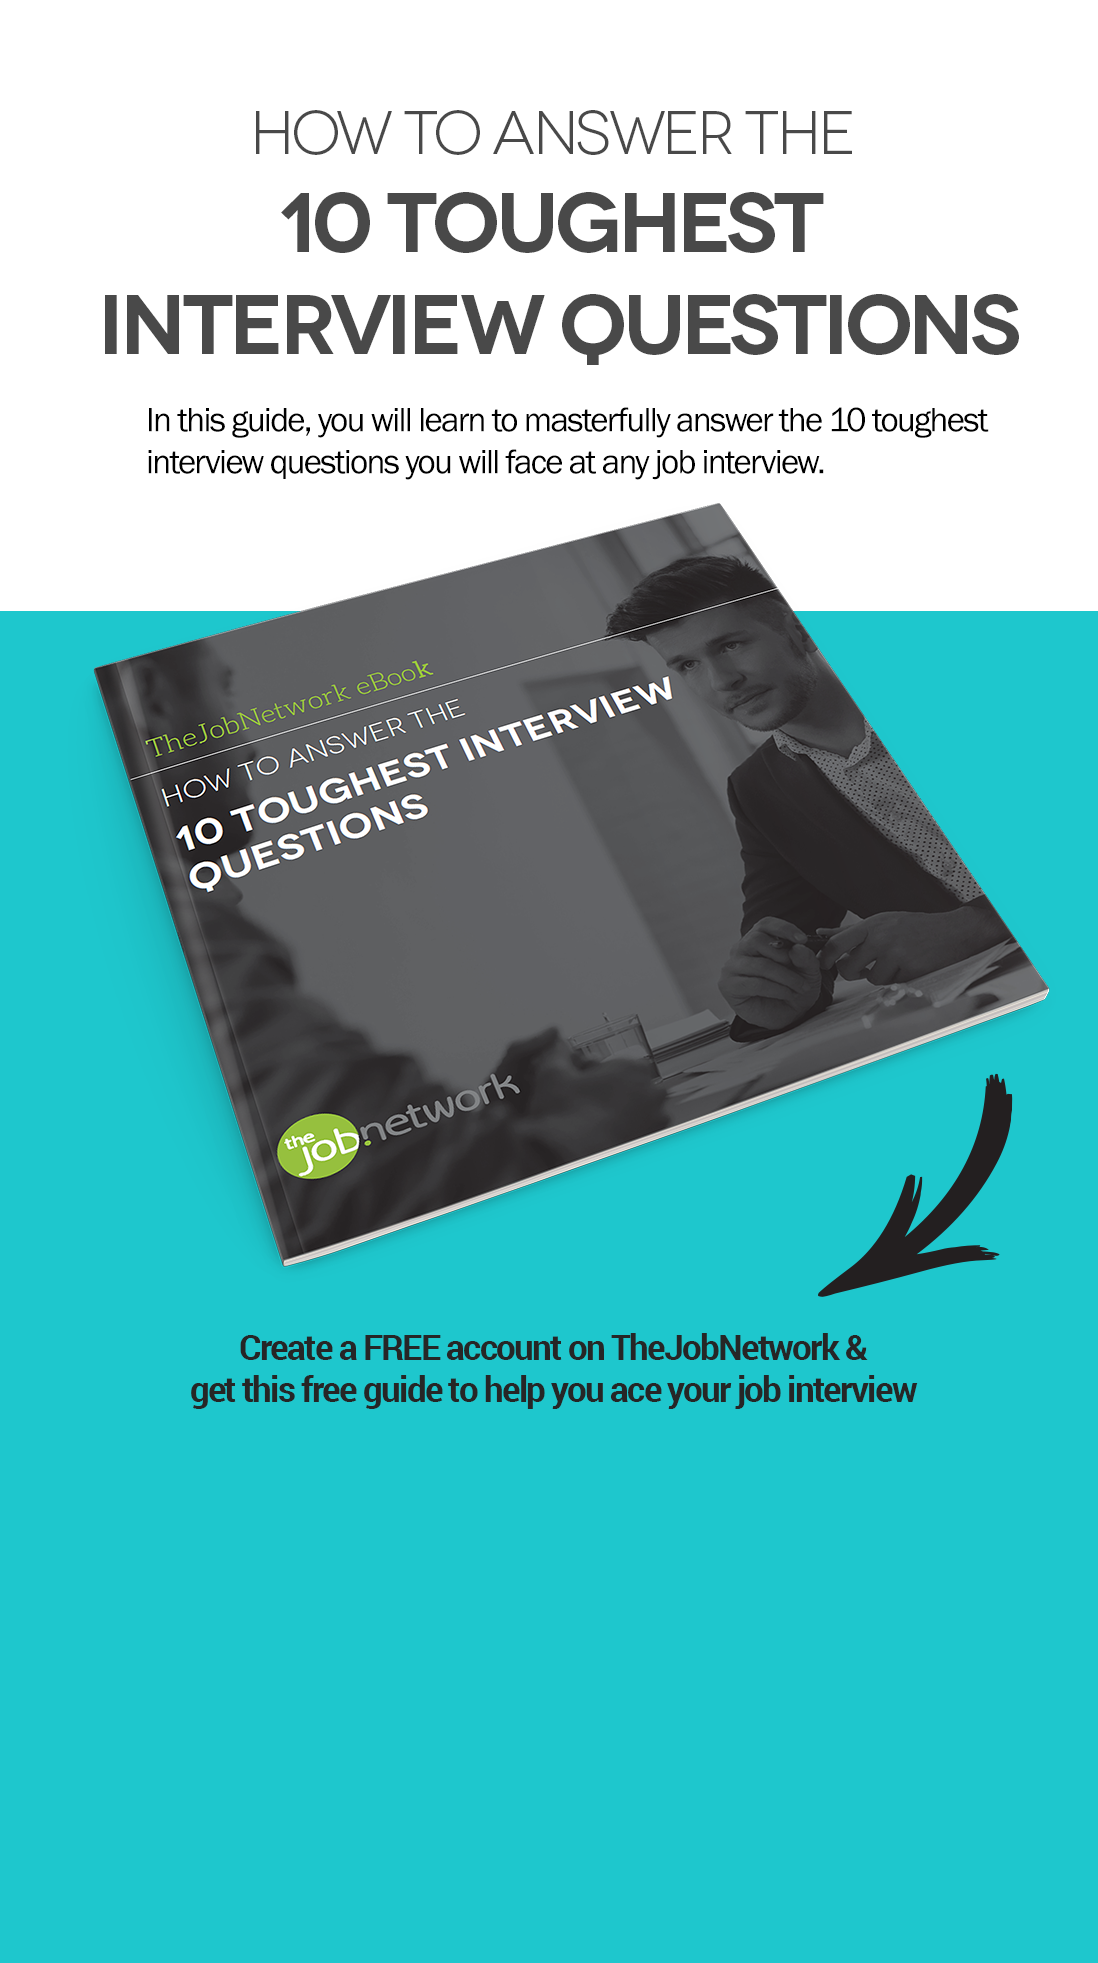 how to answer the toughest interview questions ebook